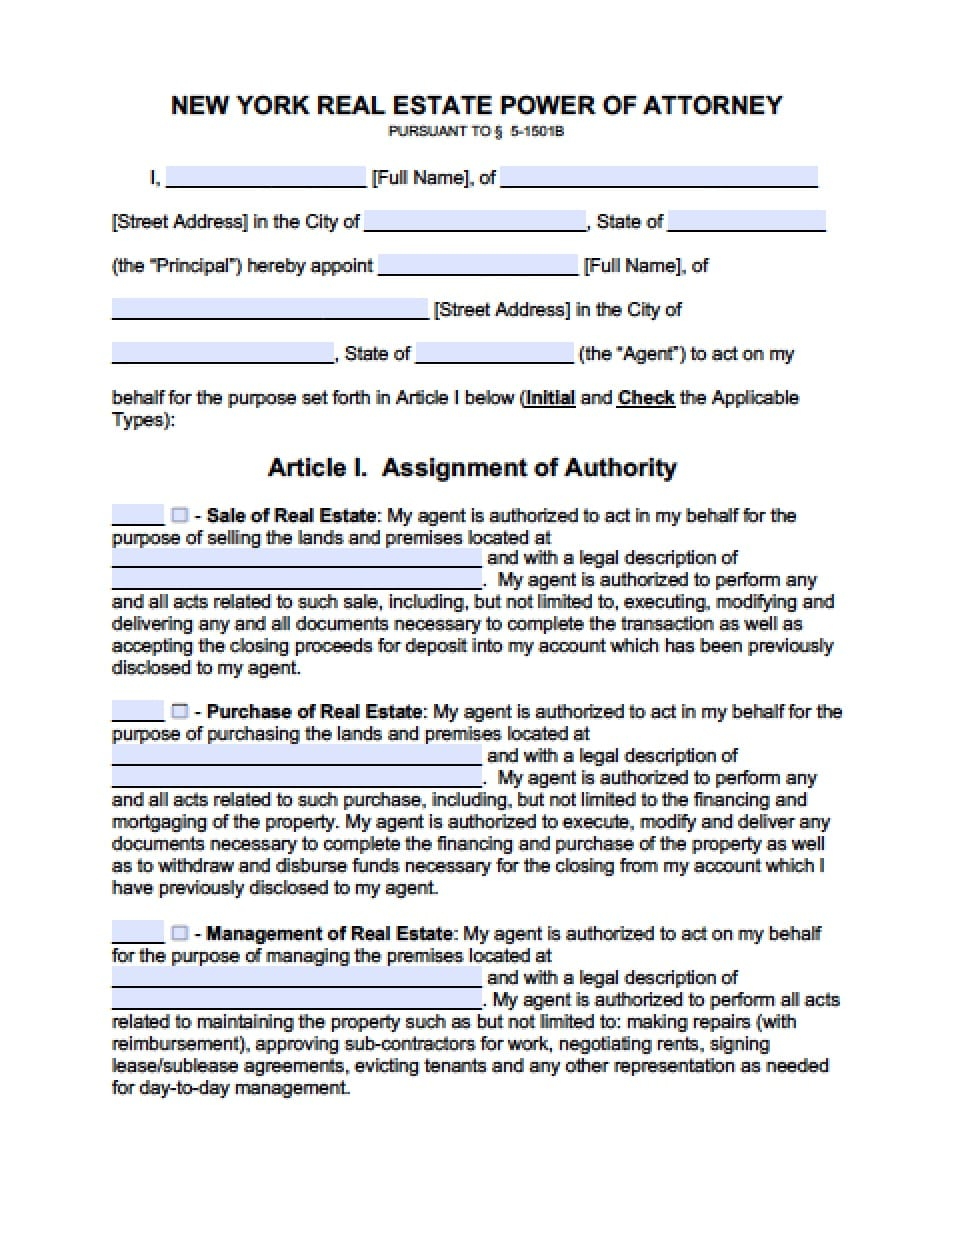 fillable power of attorney form ny  New York Real Estate ONLY Power of Attorney Form - Power of ...